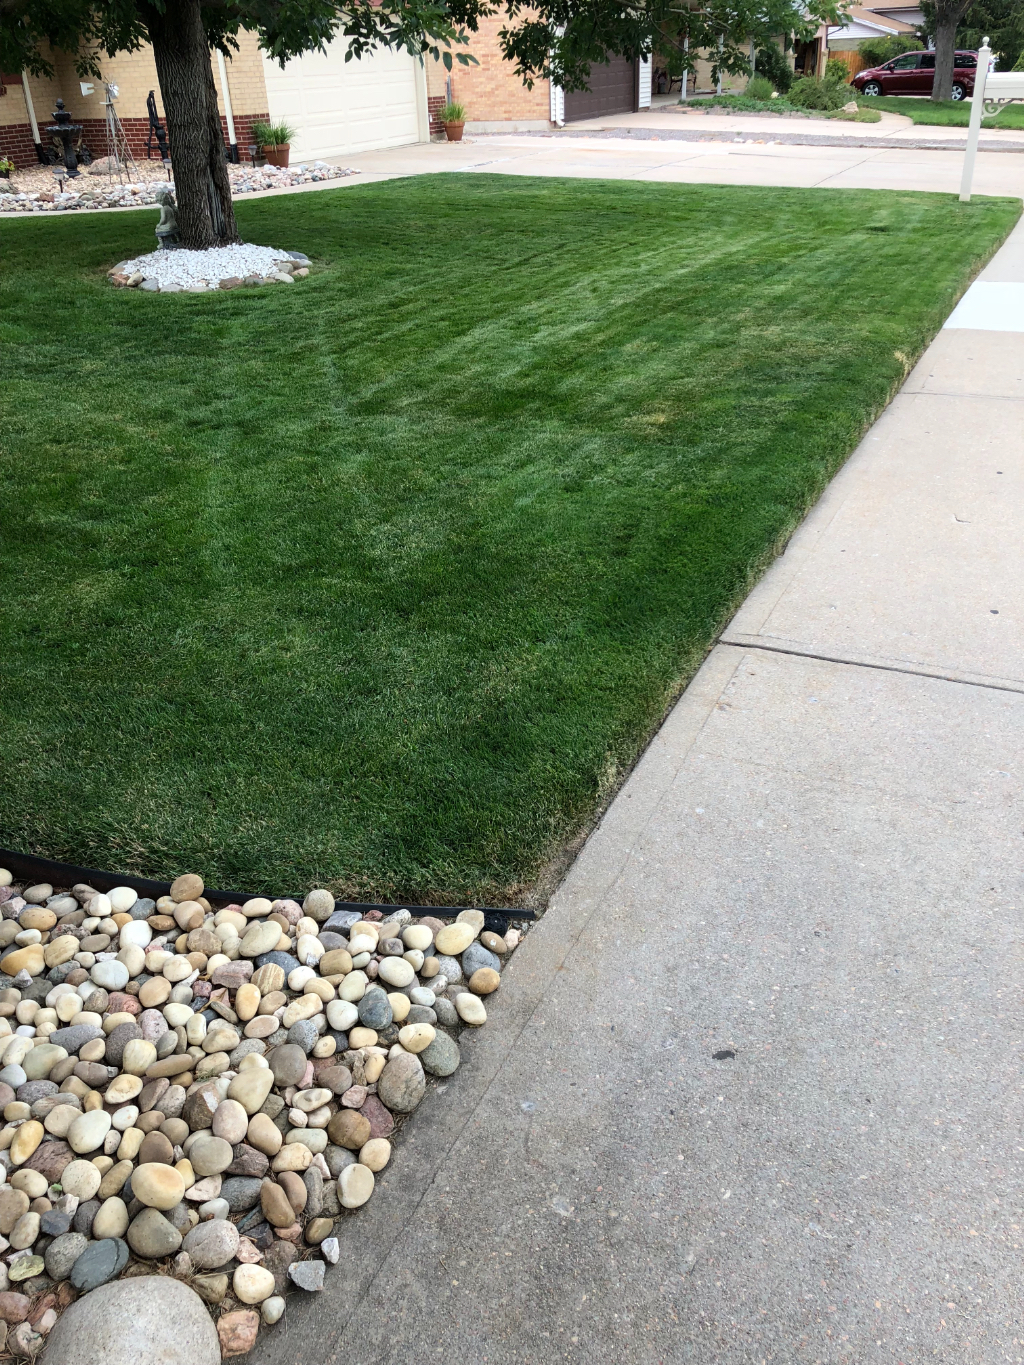 Yard mowing company in Littleton, CO, 80123